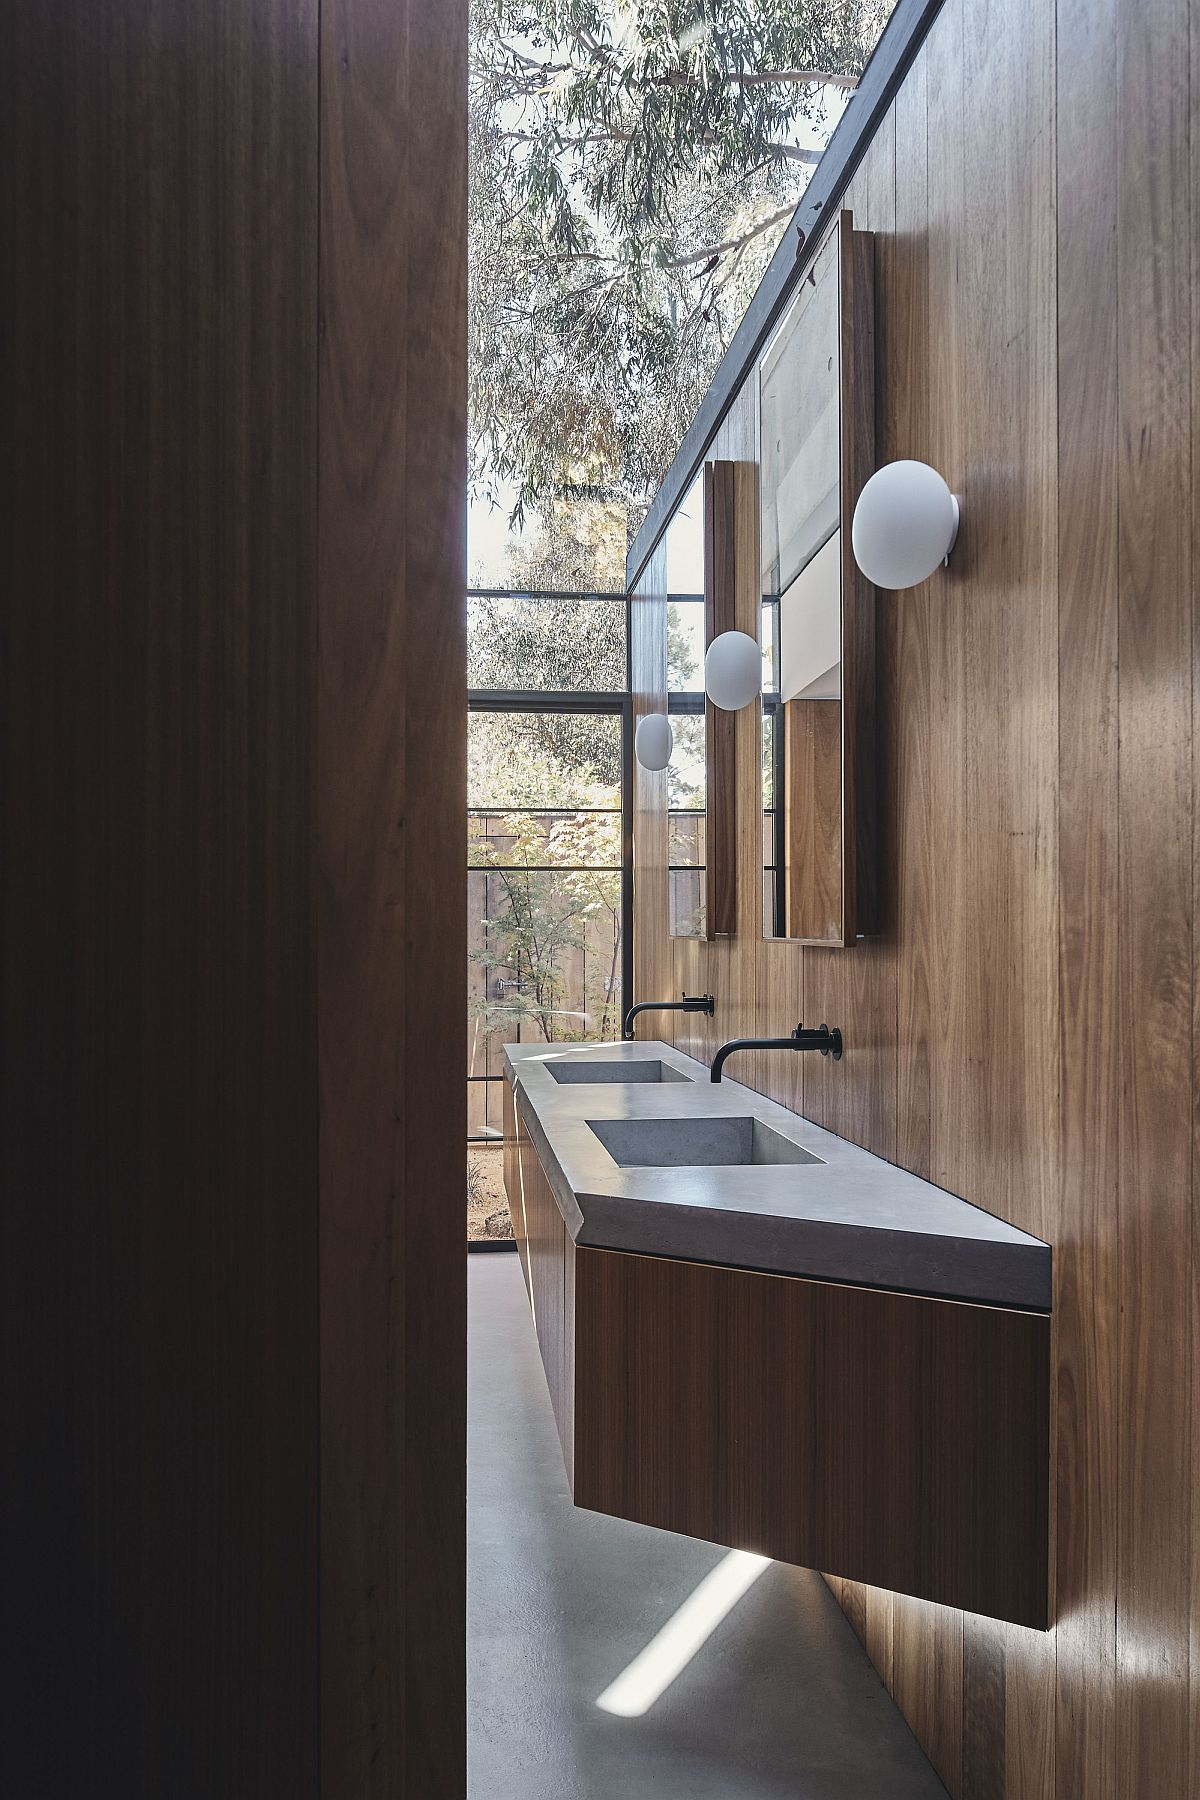 Minimal bathroom of the house with floating wooden vanity and a view of the outdoors